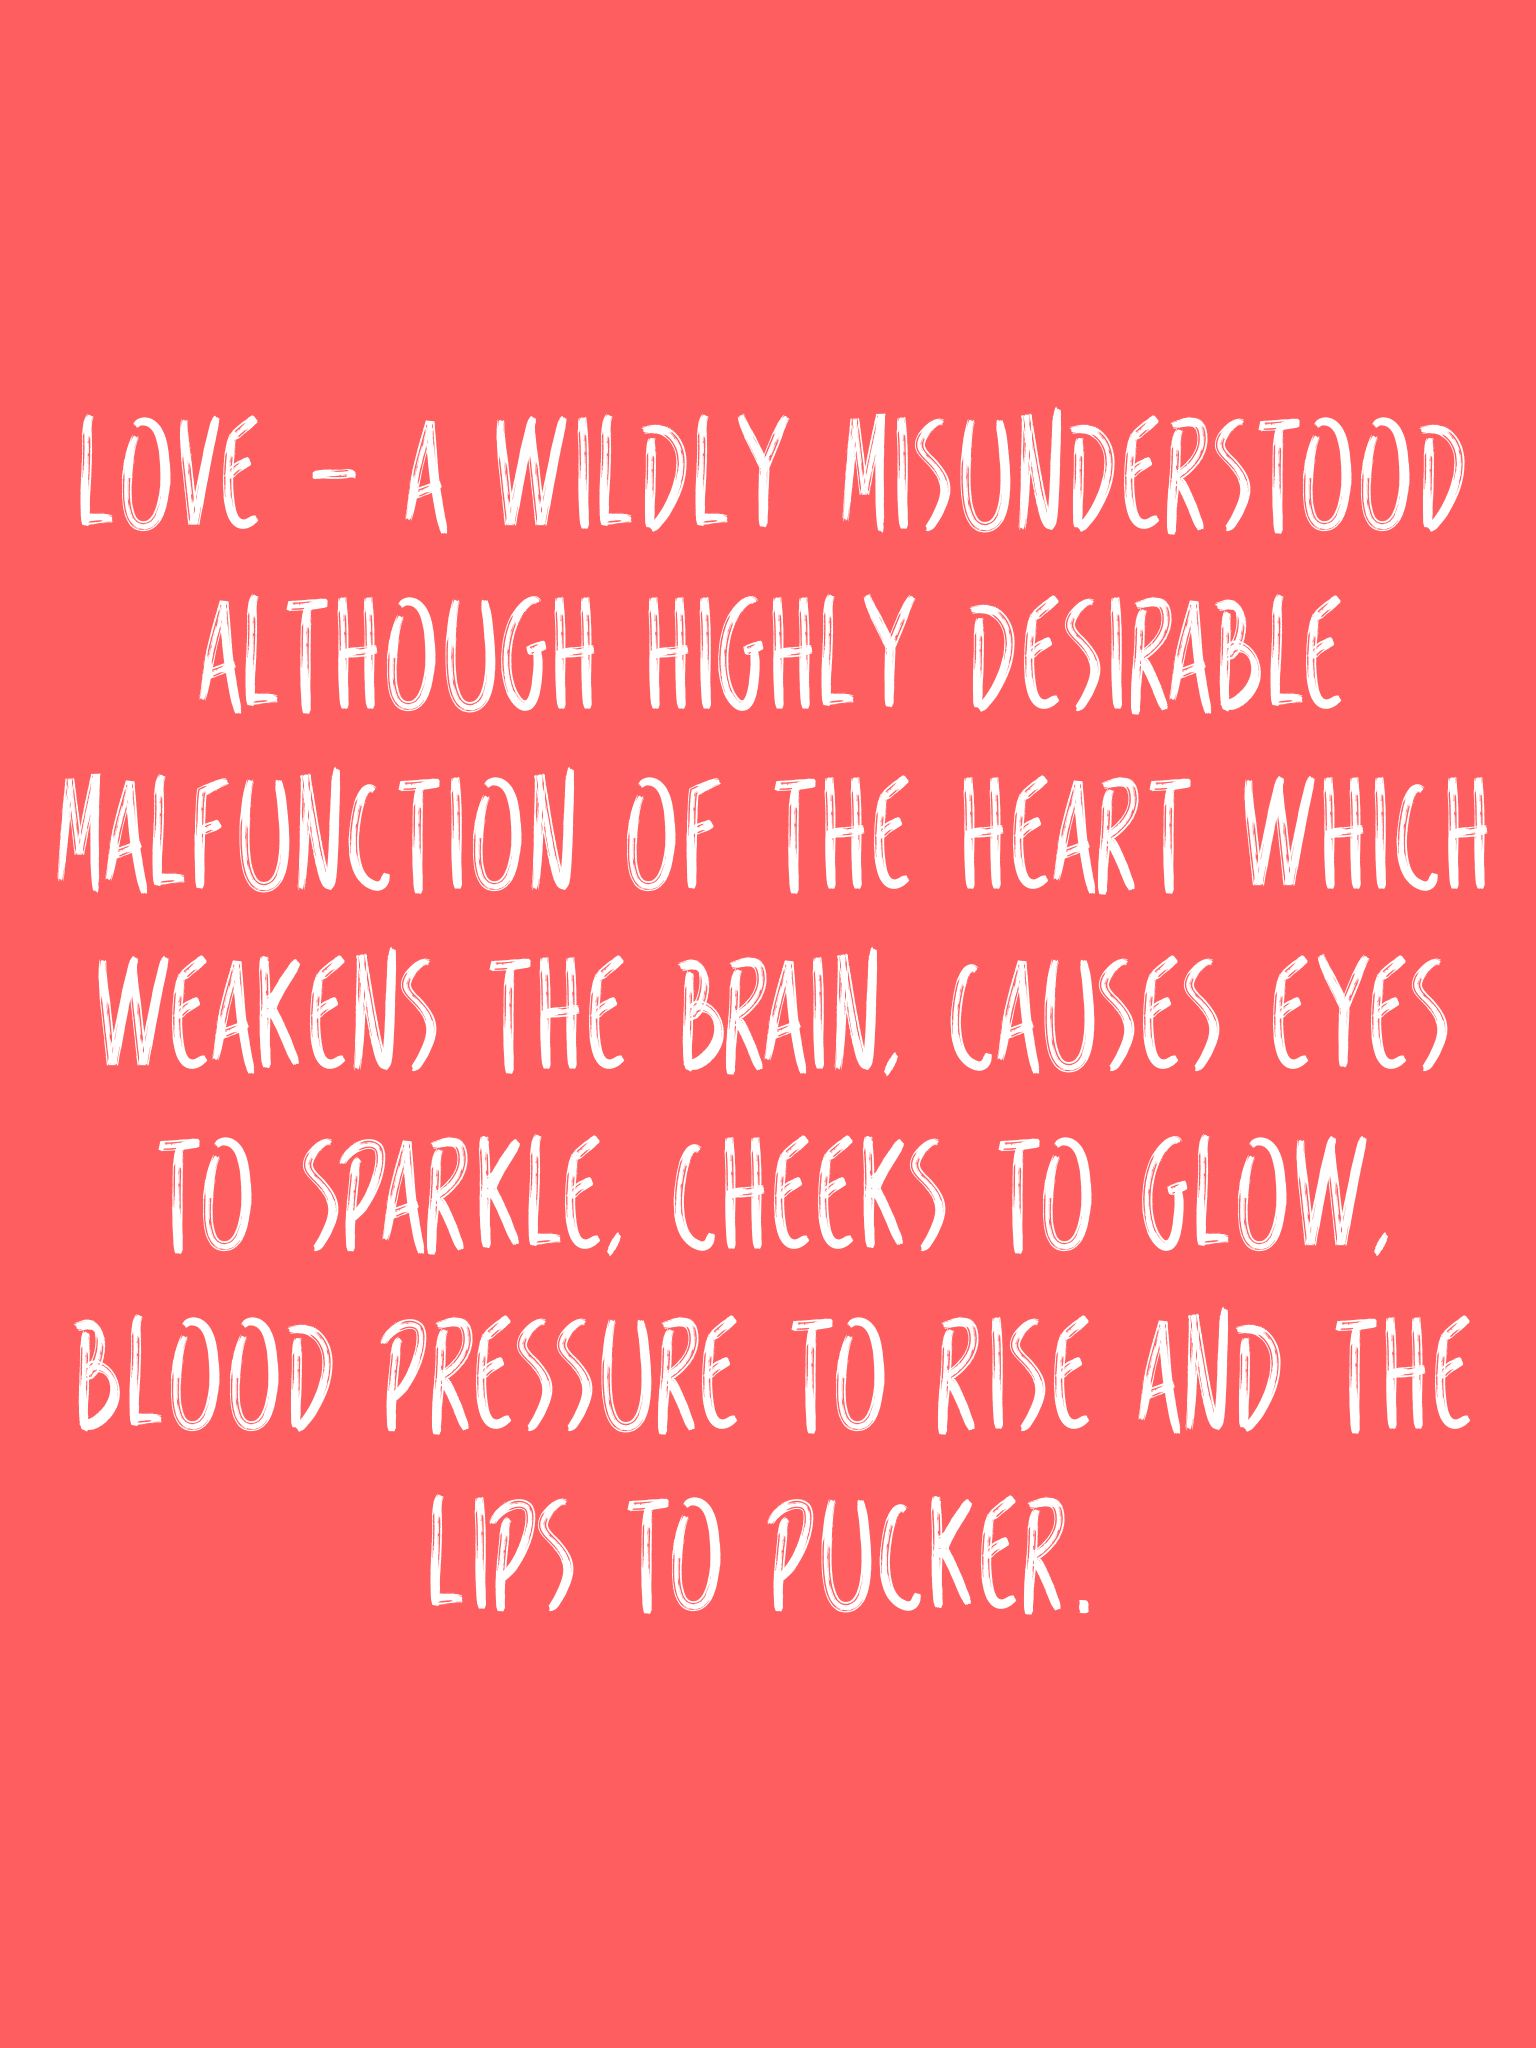 Love - a wildly misunderstood although highly desirable malfunction of the heart which weakens the brain, causes eyes to sparkle, cheeks to glow, blood pressure to rise and the lips to pucker